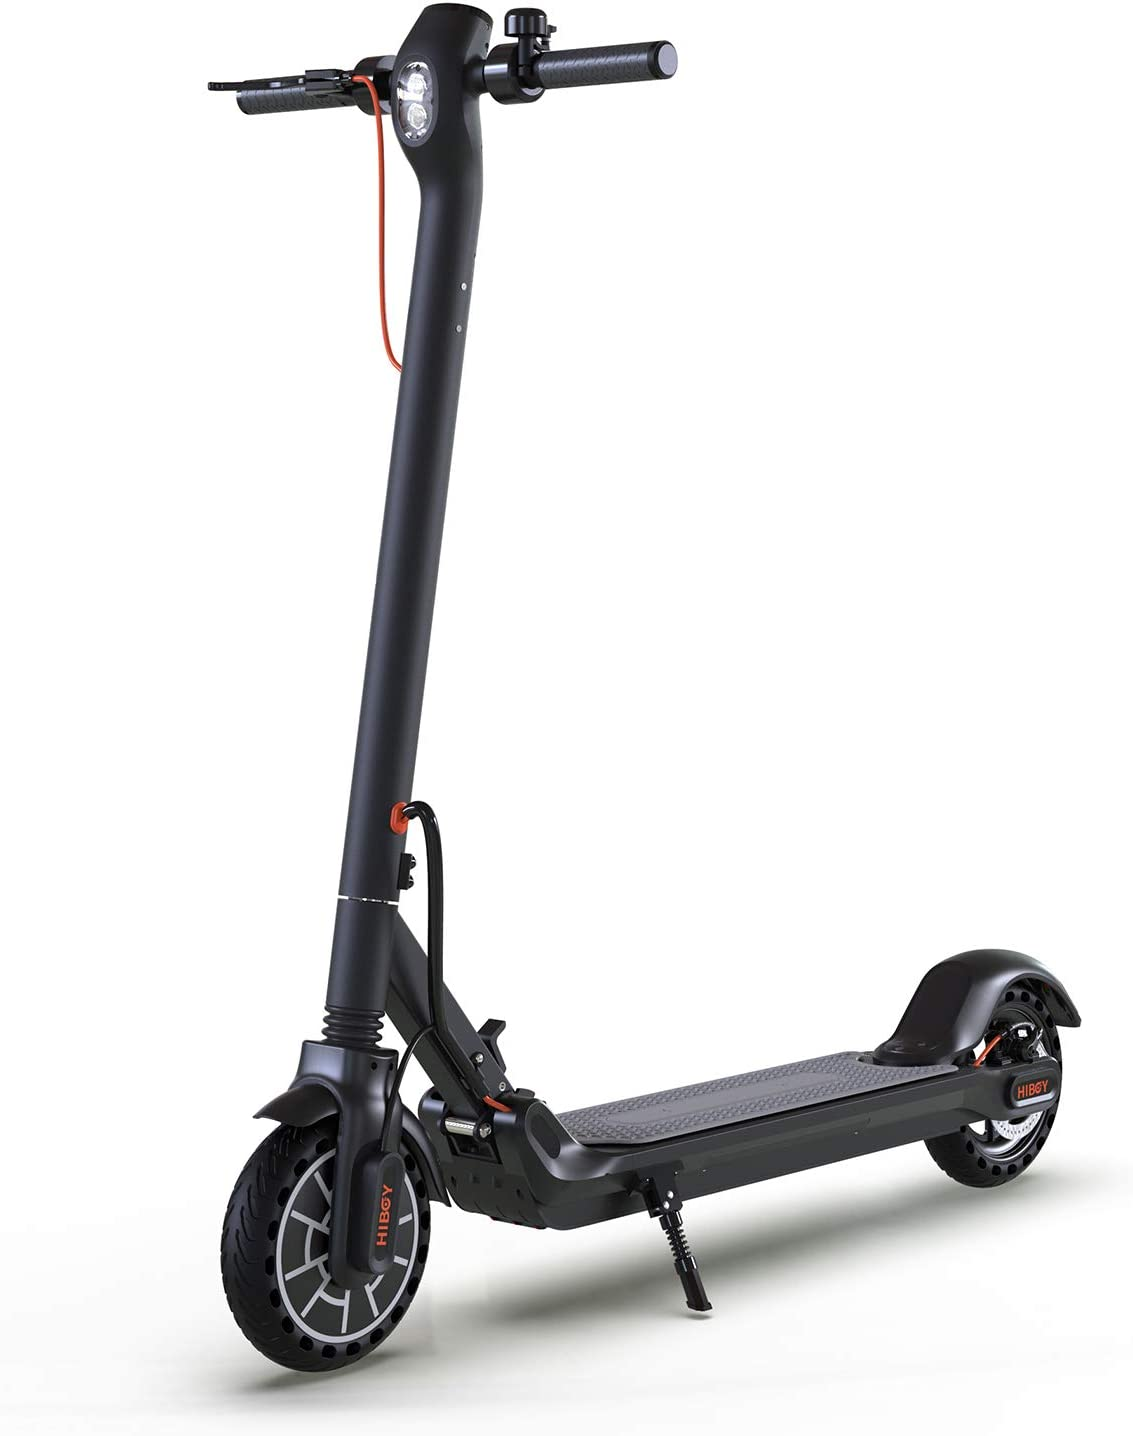 best electric scooter for climbing hills: Hiboy MAX Electric Scooter